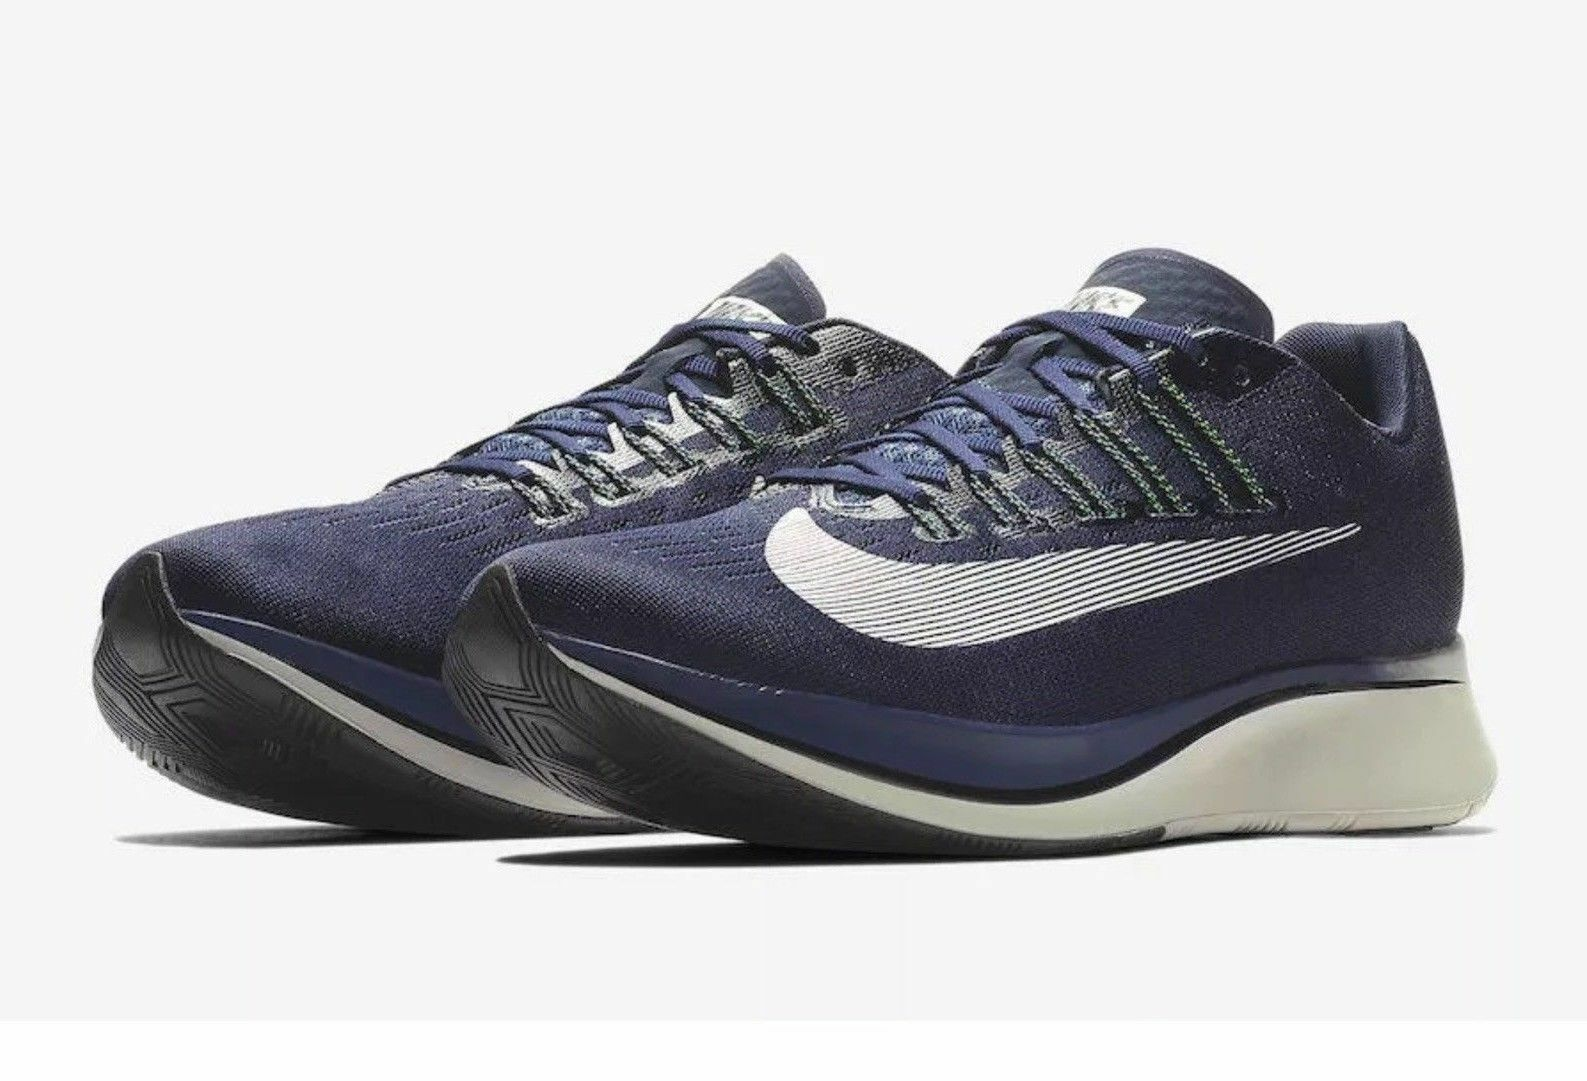 Nike Zoom Fly Mens Running shoes Obsidian Neutral Indigo 880848-405 NEW  150